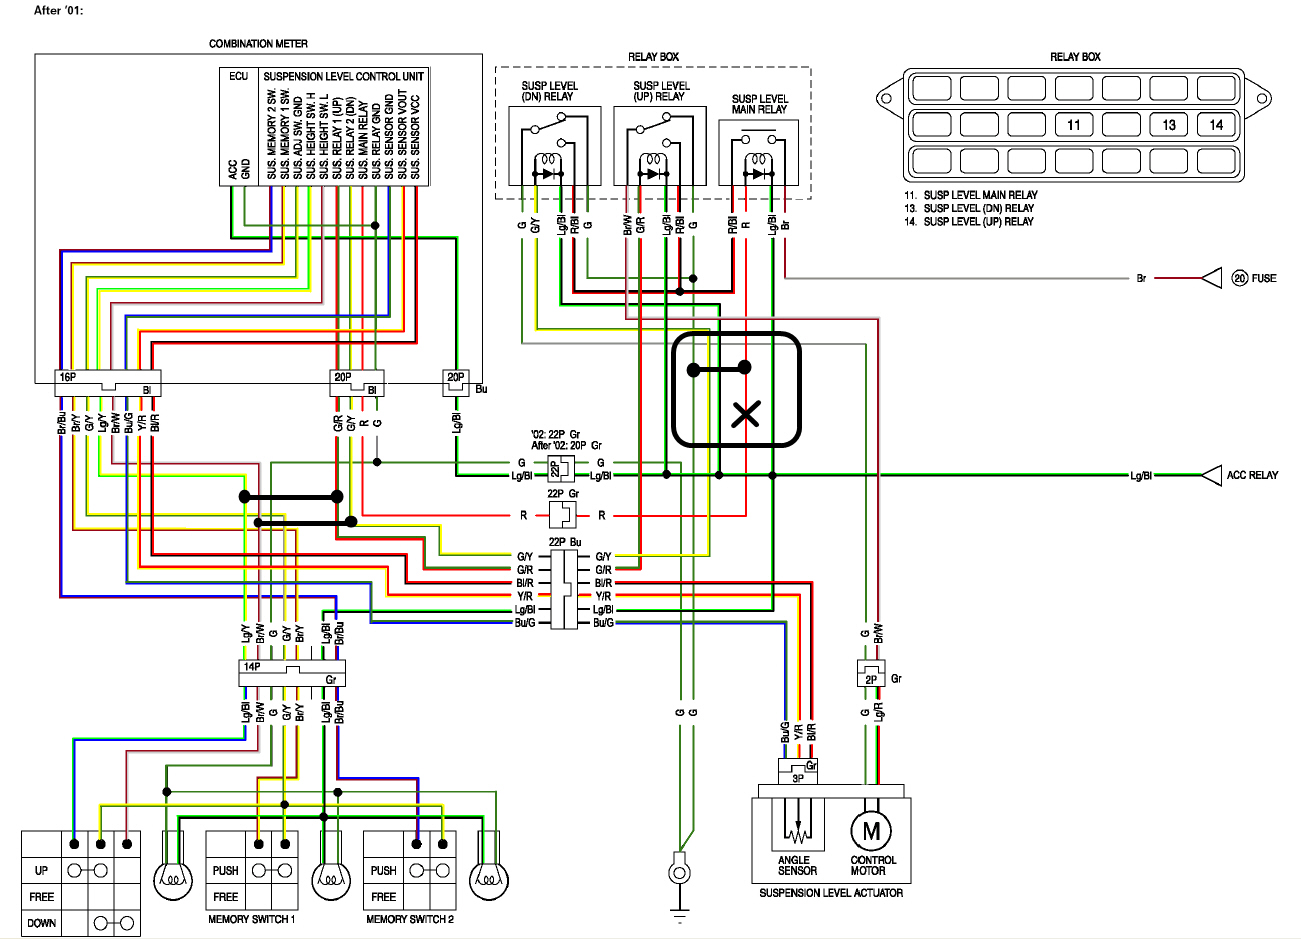 Amazing Cb900F Wiring Diagram Wiring Diagram Wiring Cloud Geisbieswglorg